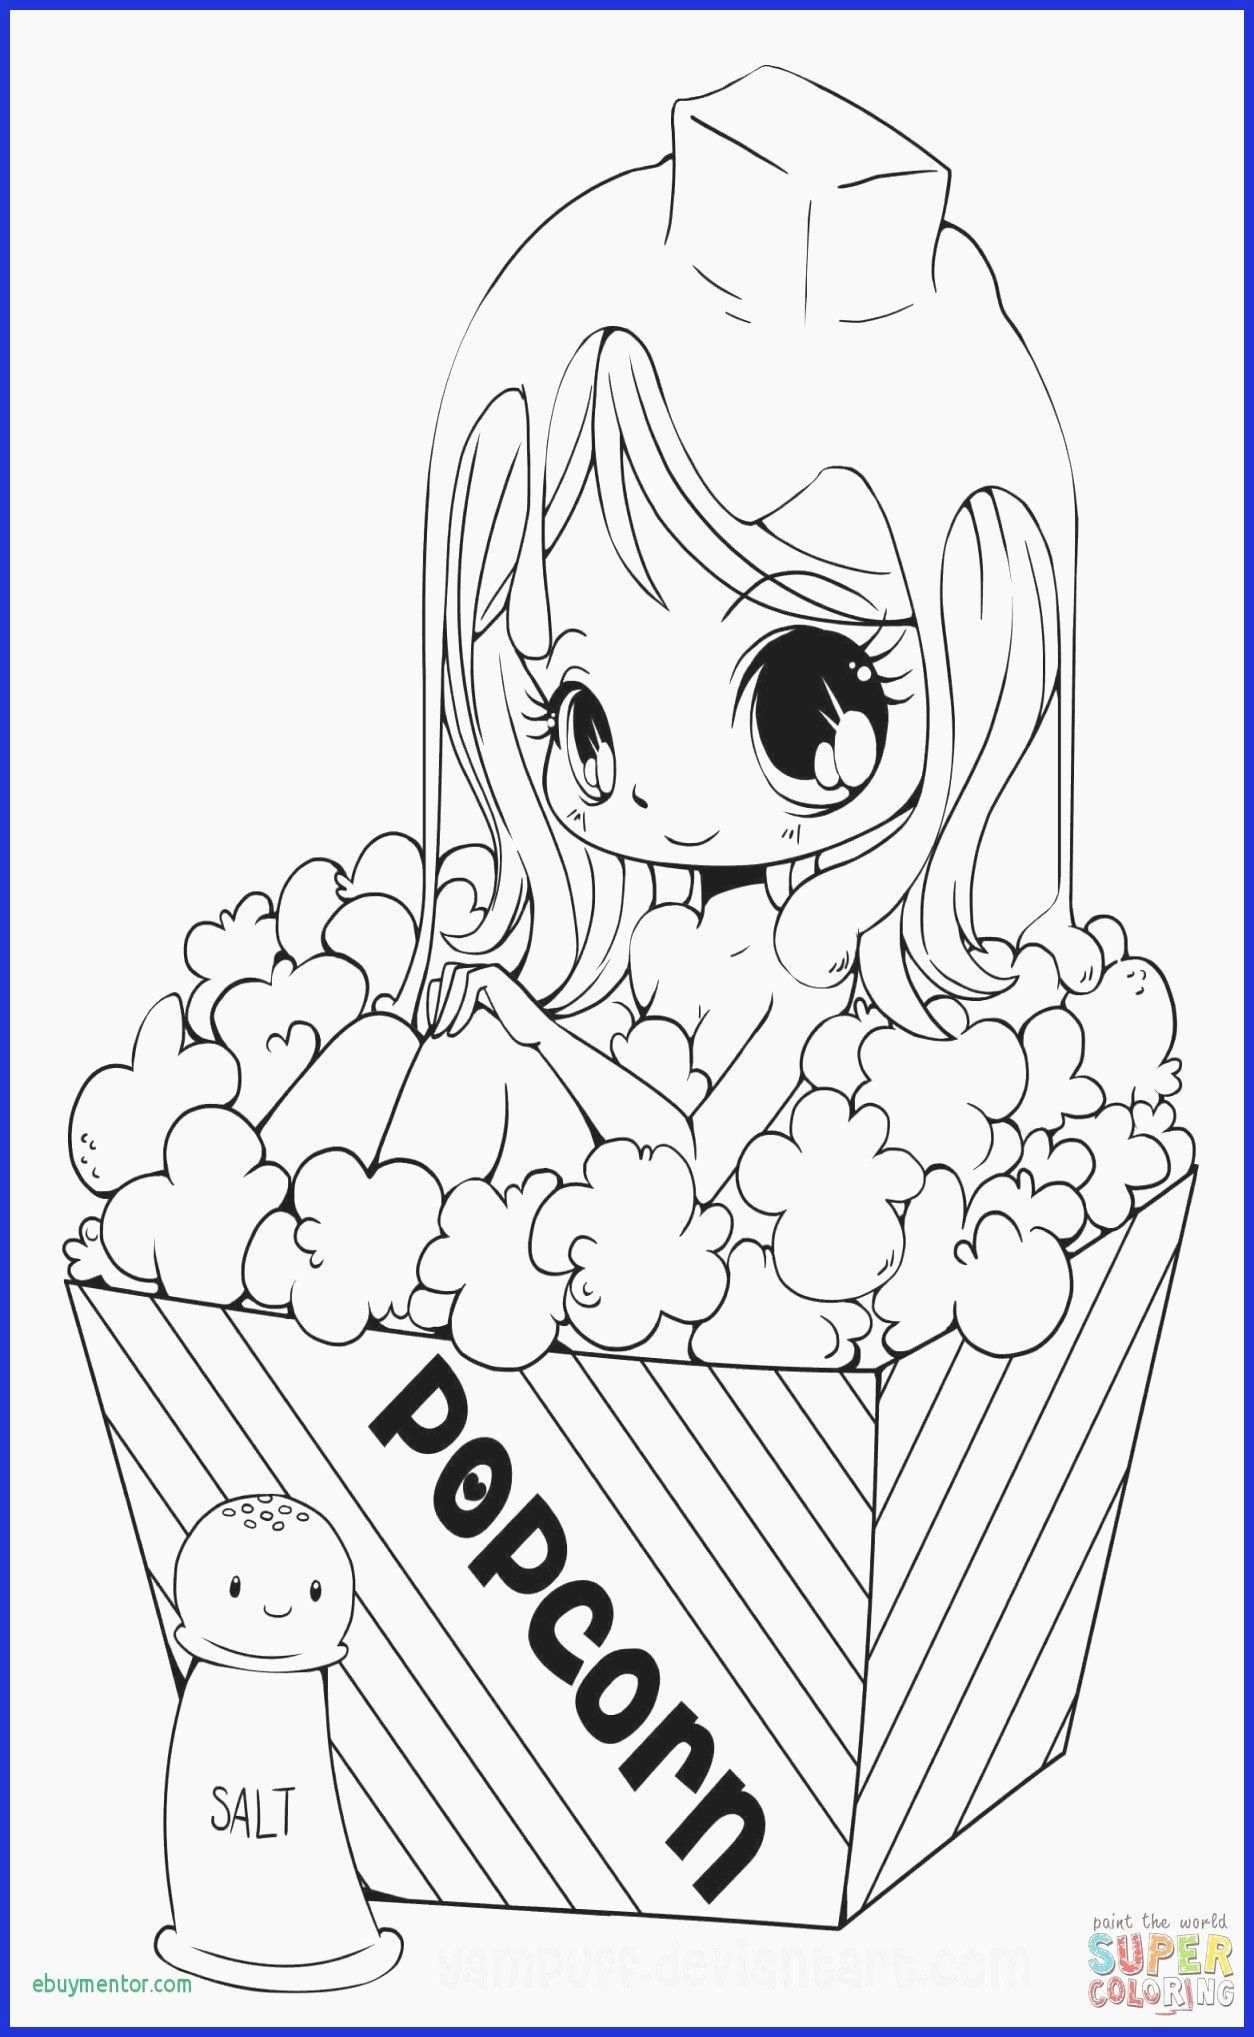 Coloring Pages Of Cartoons Characters Luxury Coloring Pages Best Coloring Books For 6 Yea Chibi Coloring Pages Princess Coloring Pages Superhero Coloring Pages